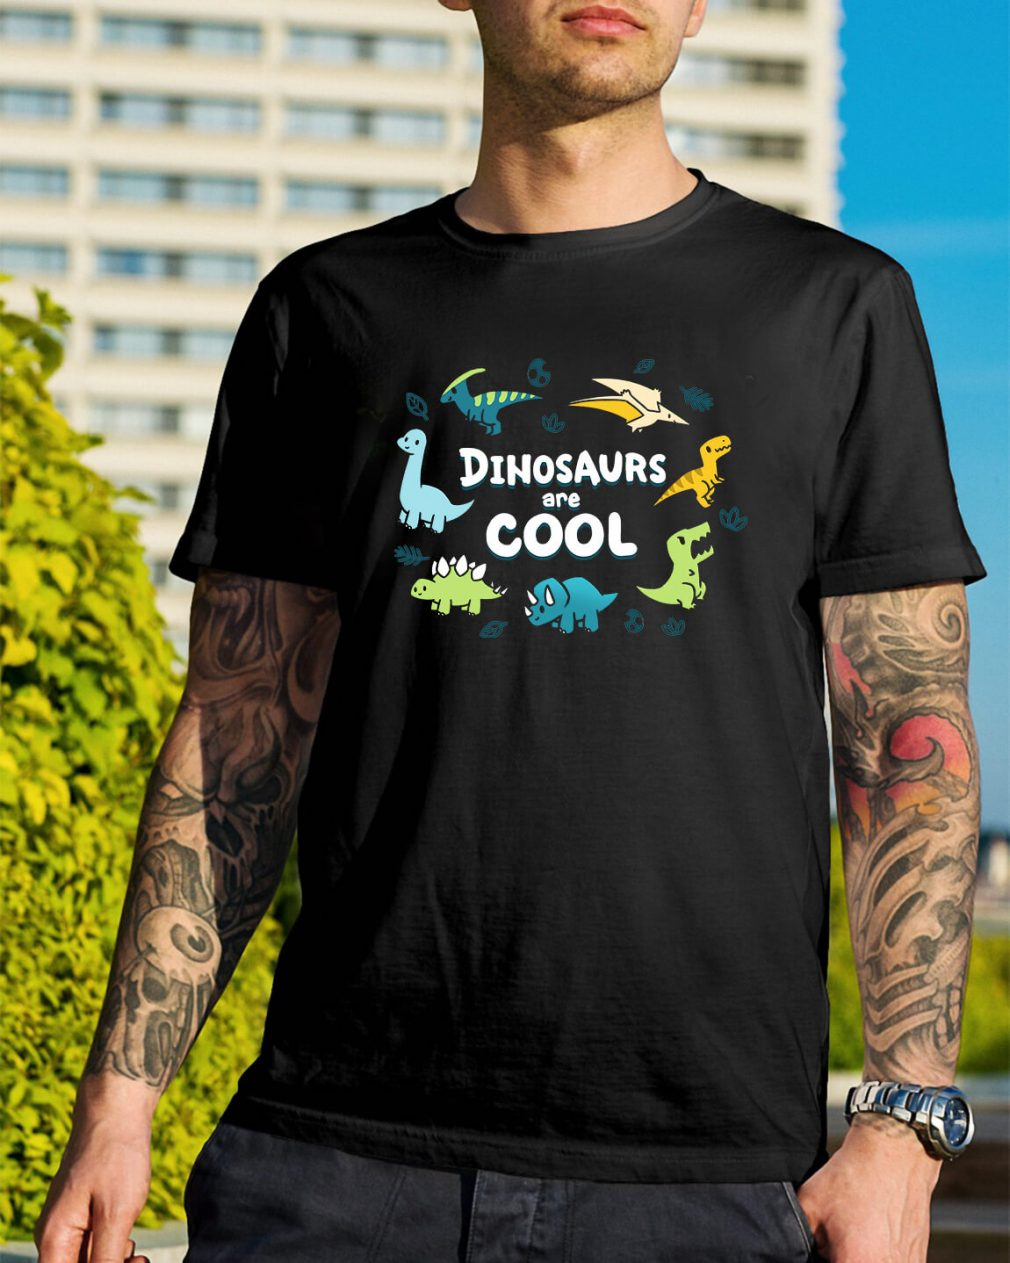 Dinosaurus are cool shirt